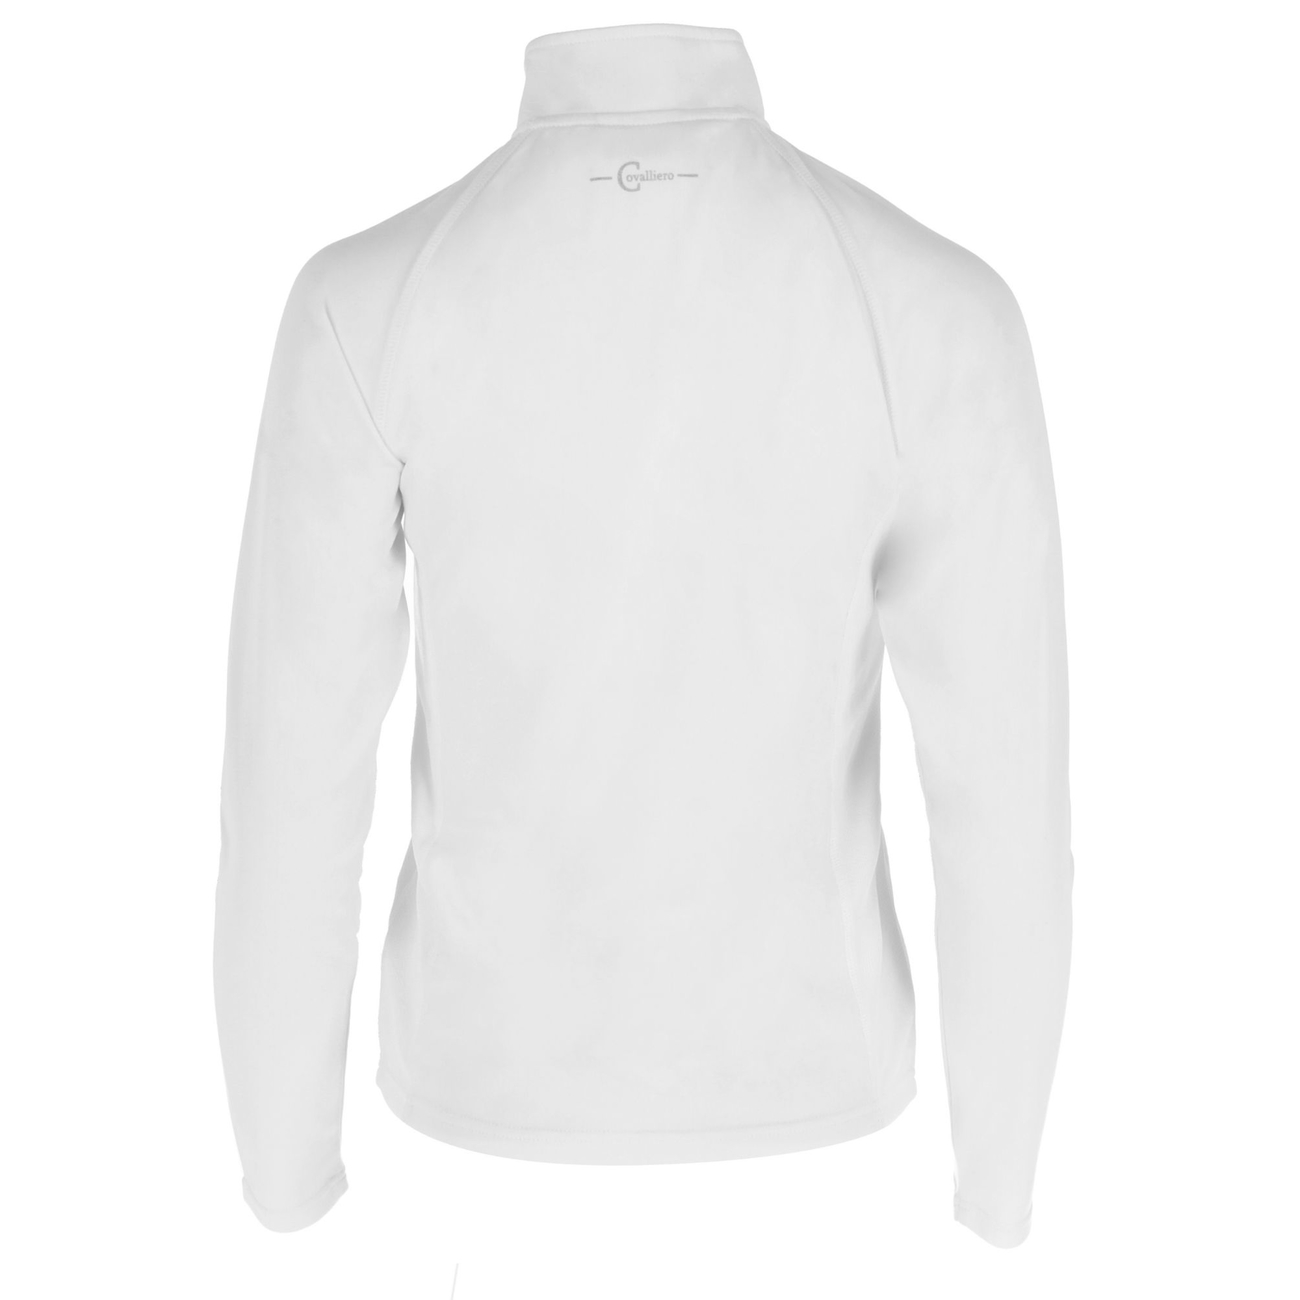 Covalliero Turniershirt Competition Shirt Premia white, Bild 2